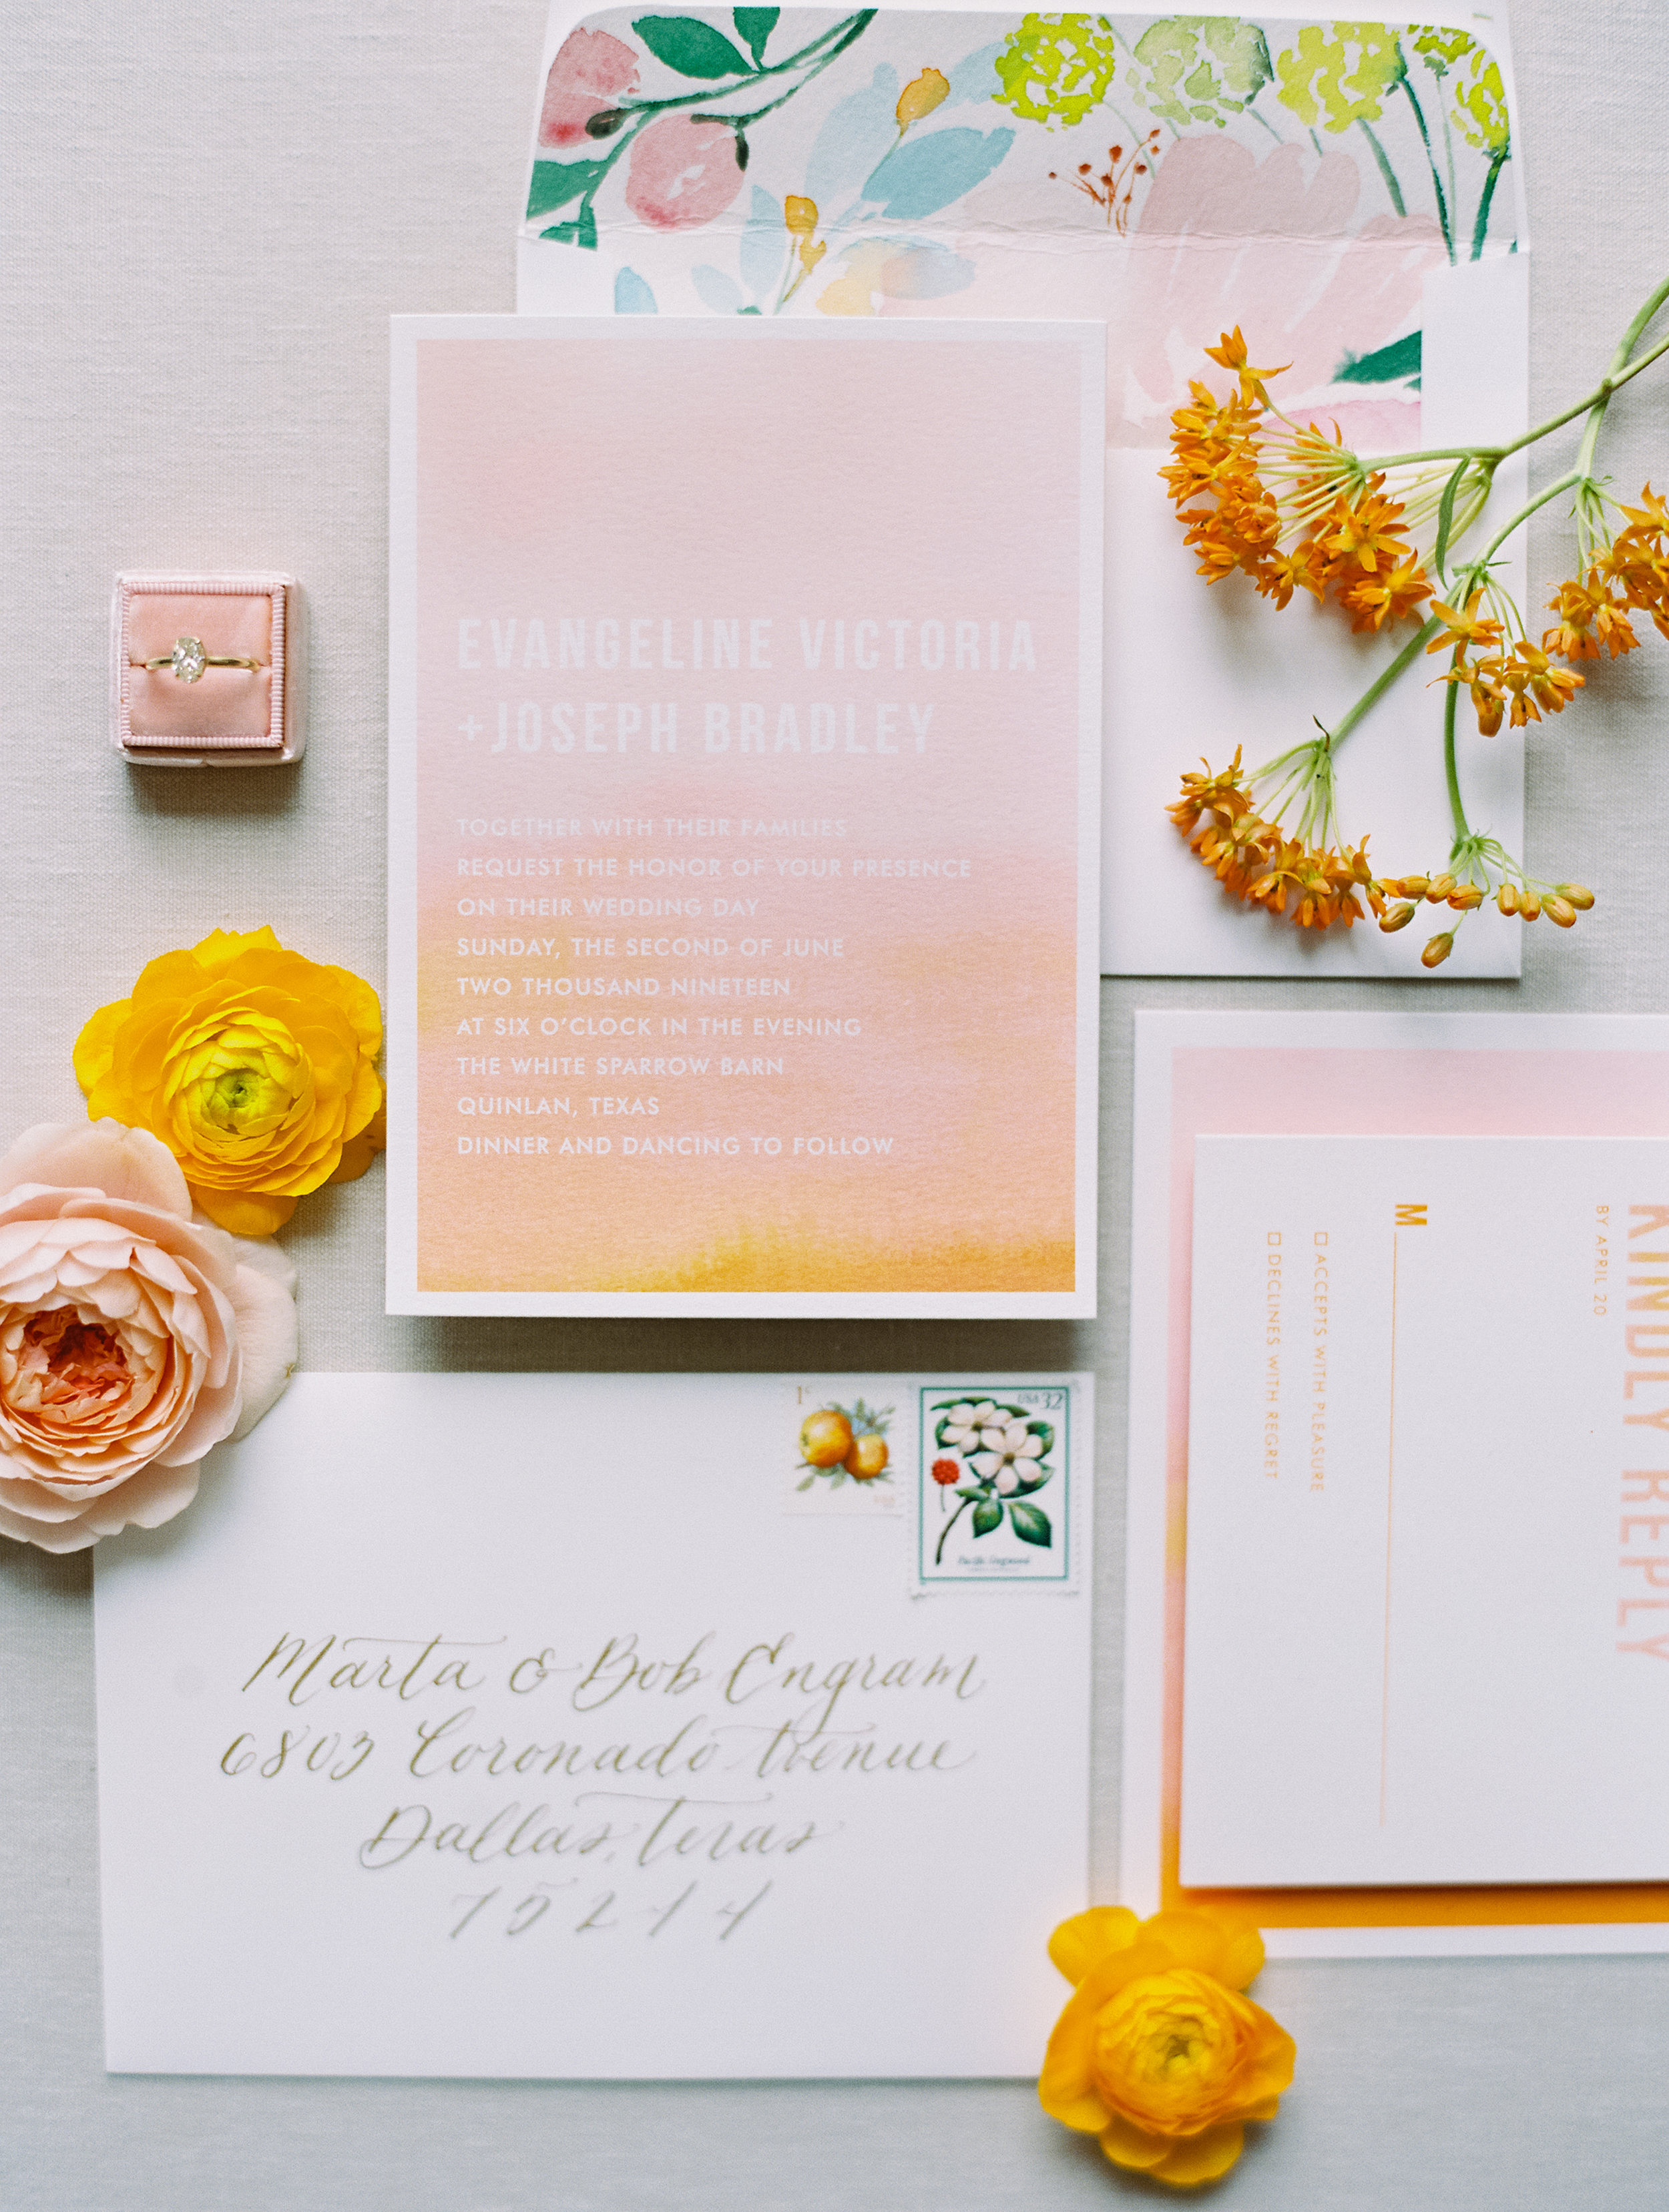 Joyful Summer Wedding Full of Color - Lindsey Brunk